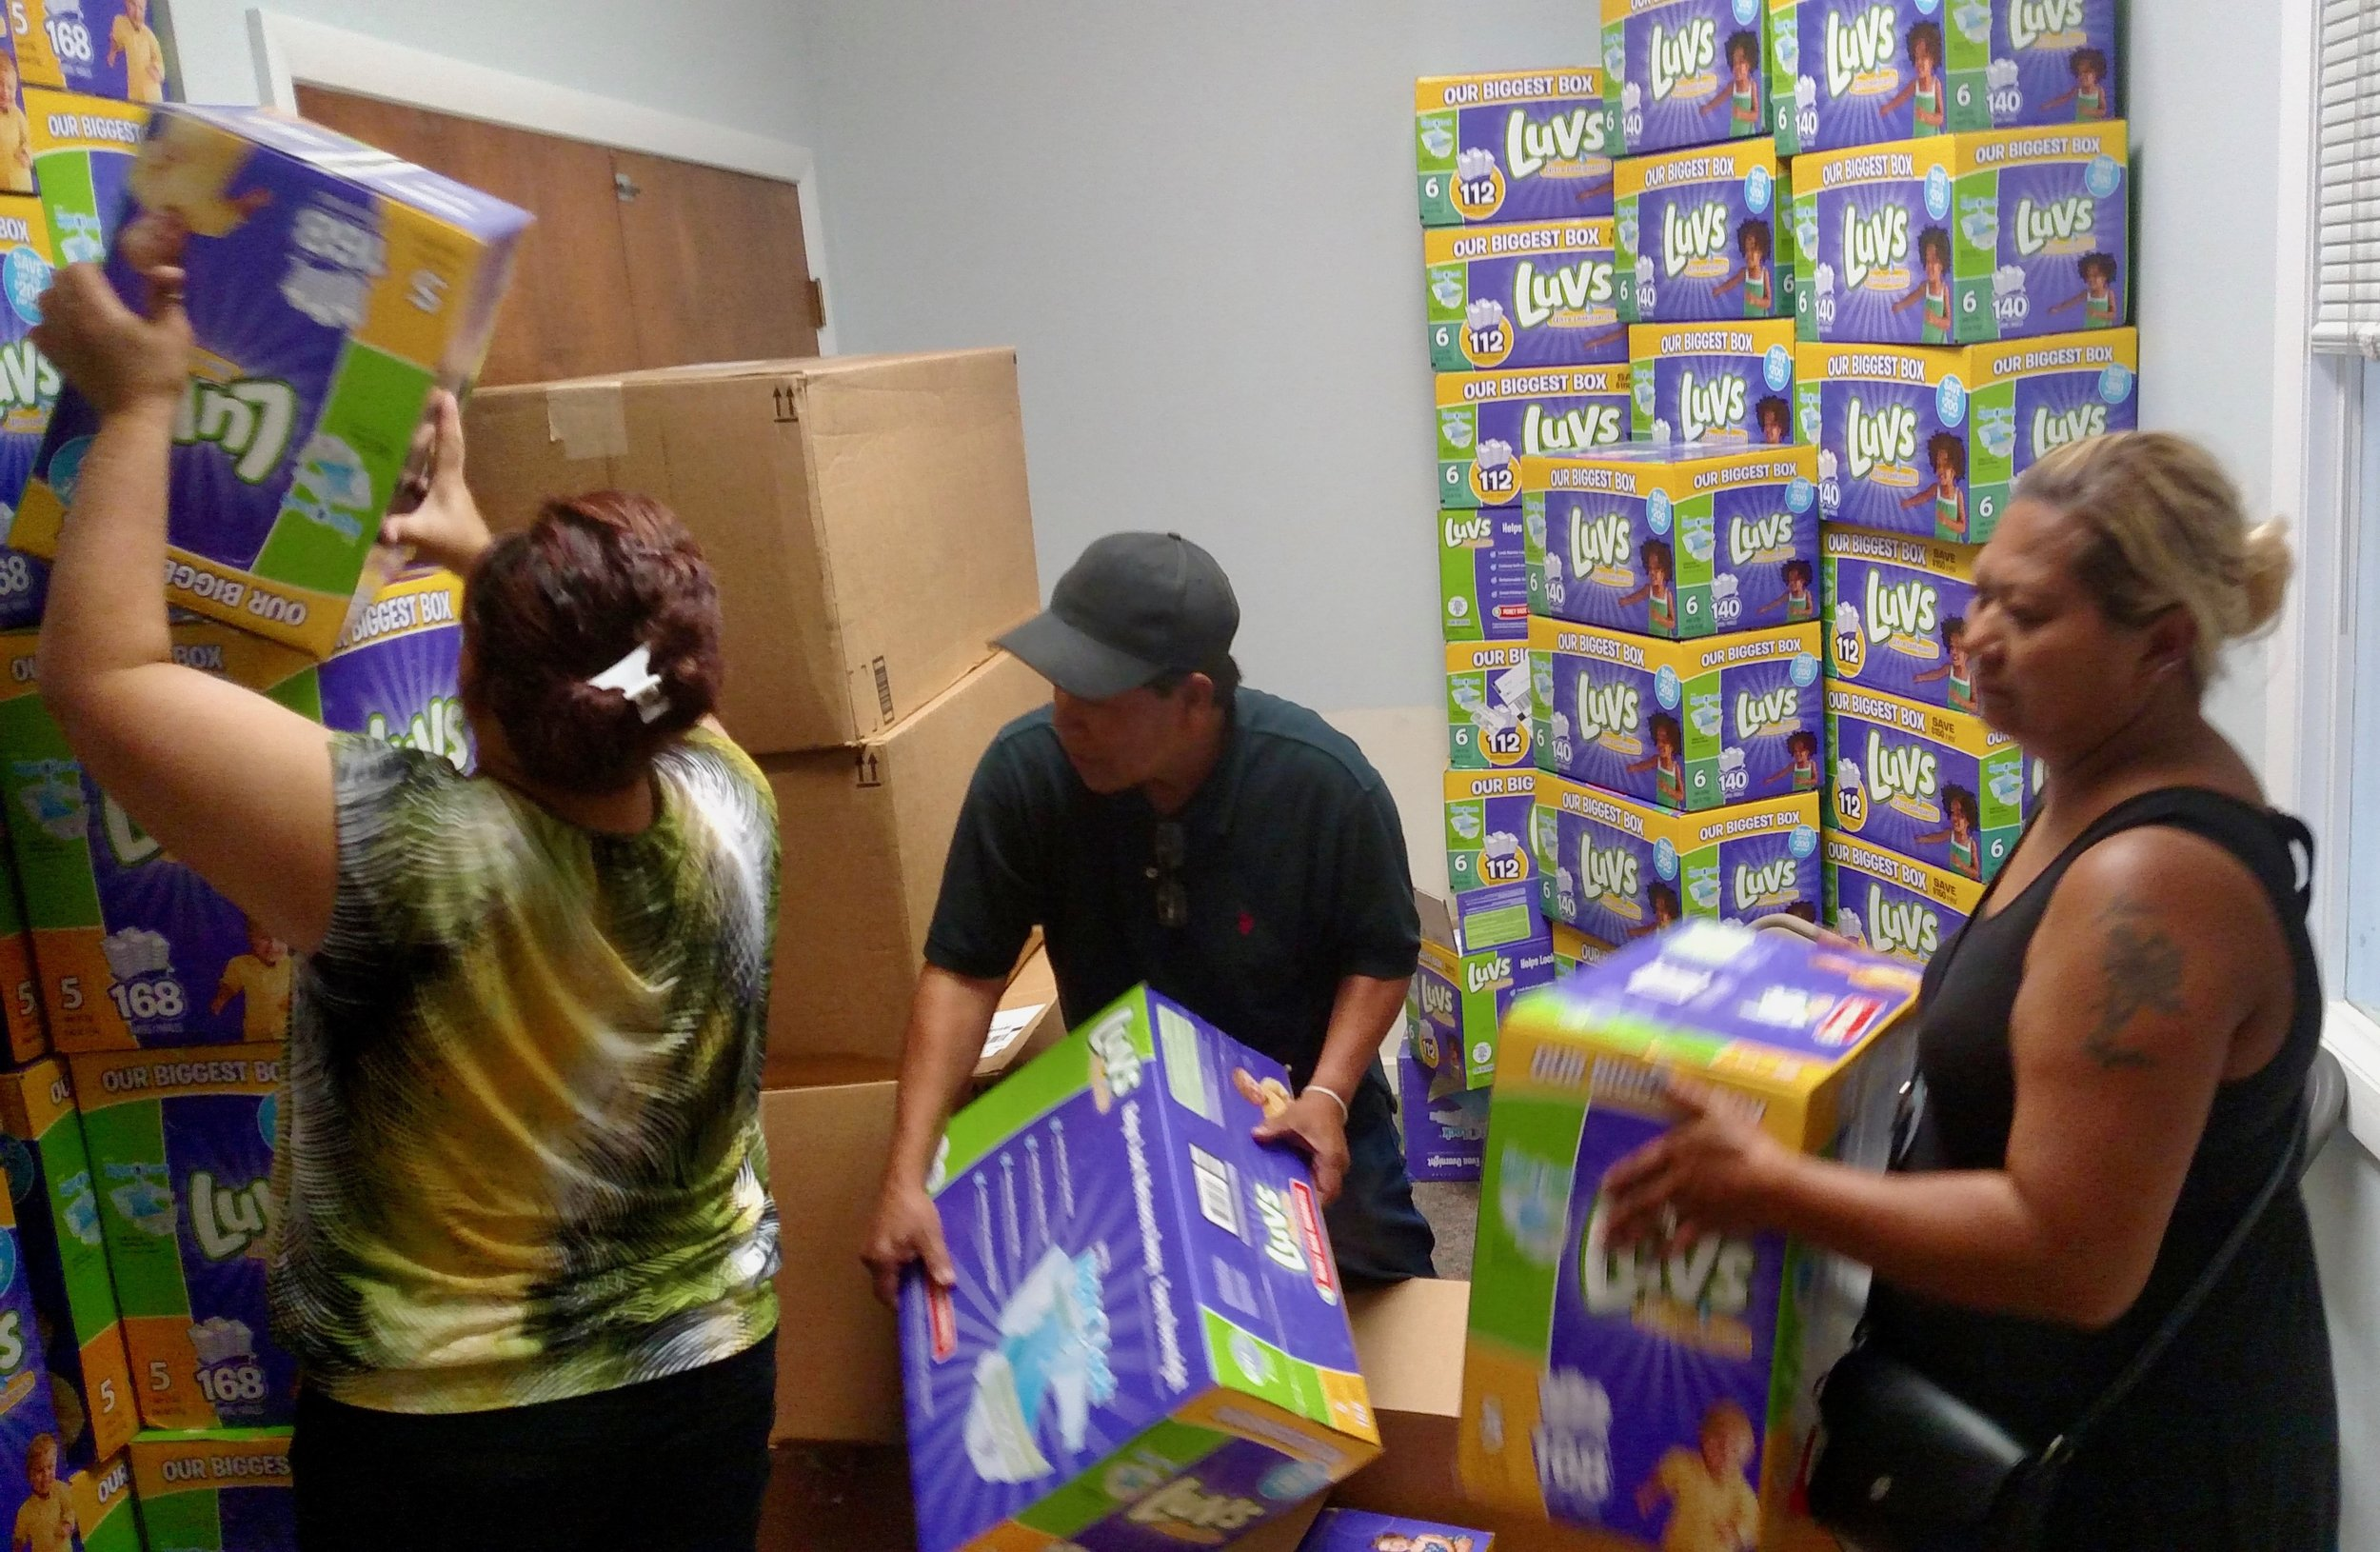 The Lowell Diaper Bank shelves, stocked with donated diapers for emergency needs.